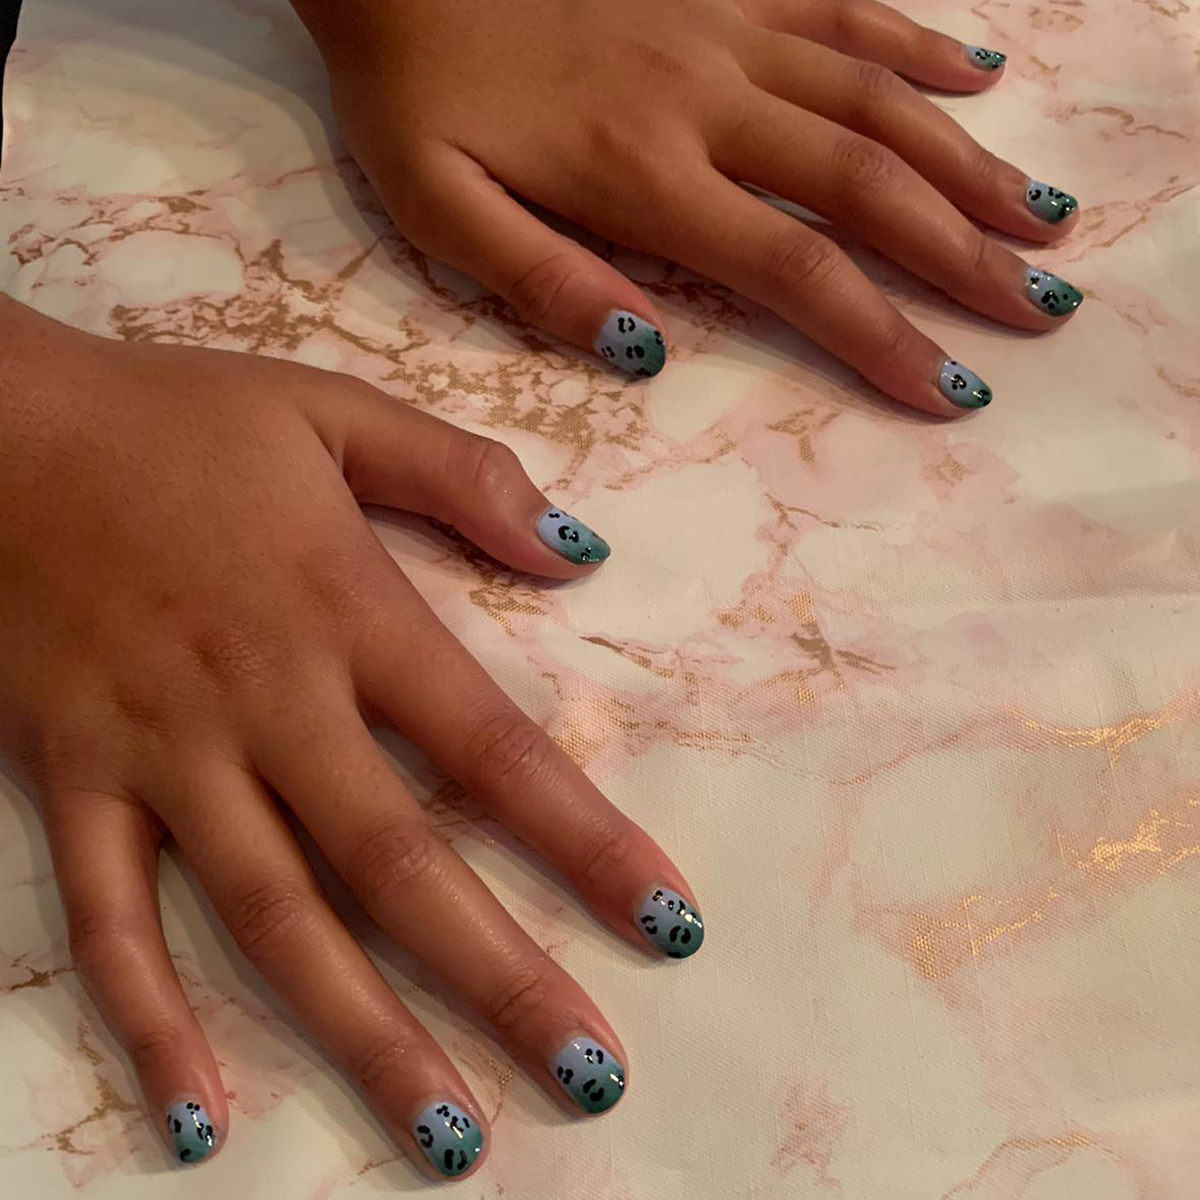 nails by natalie rose mobile manicure london Nail Party Ombre Leopard Print